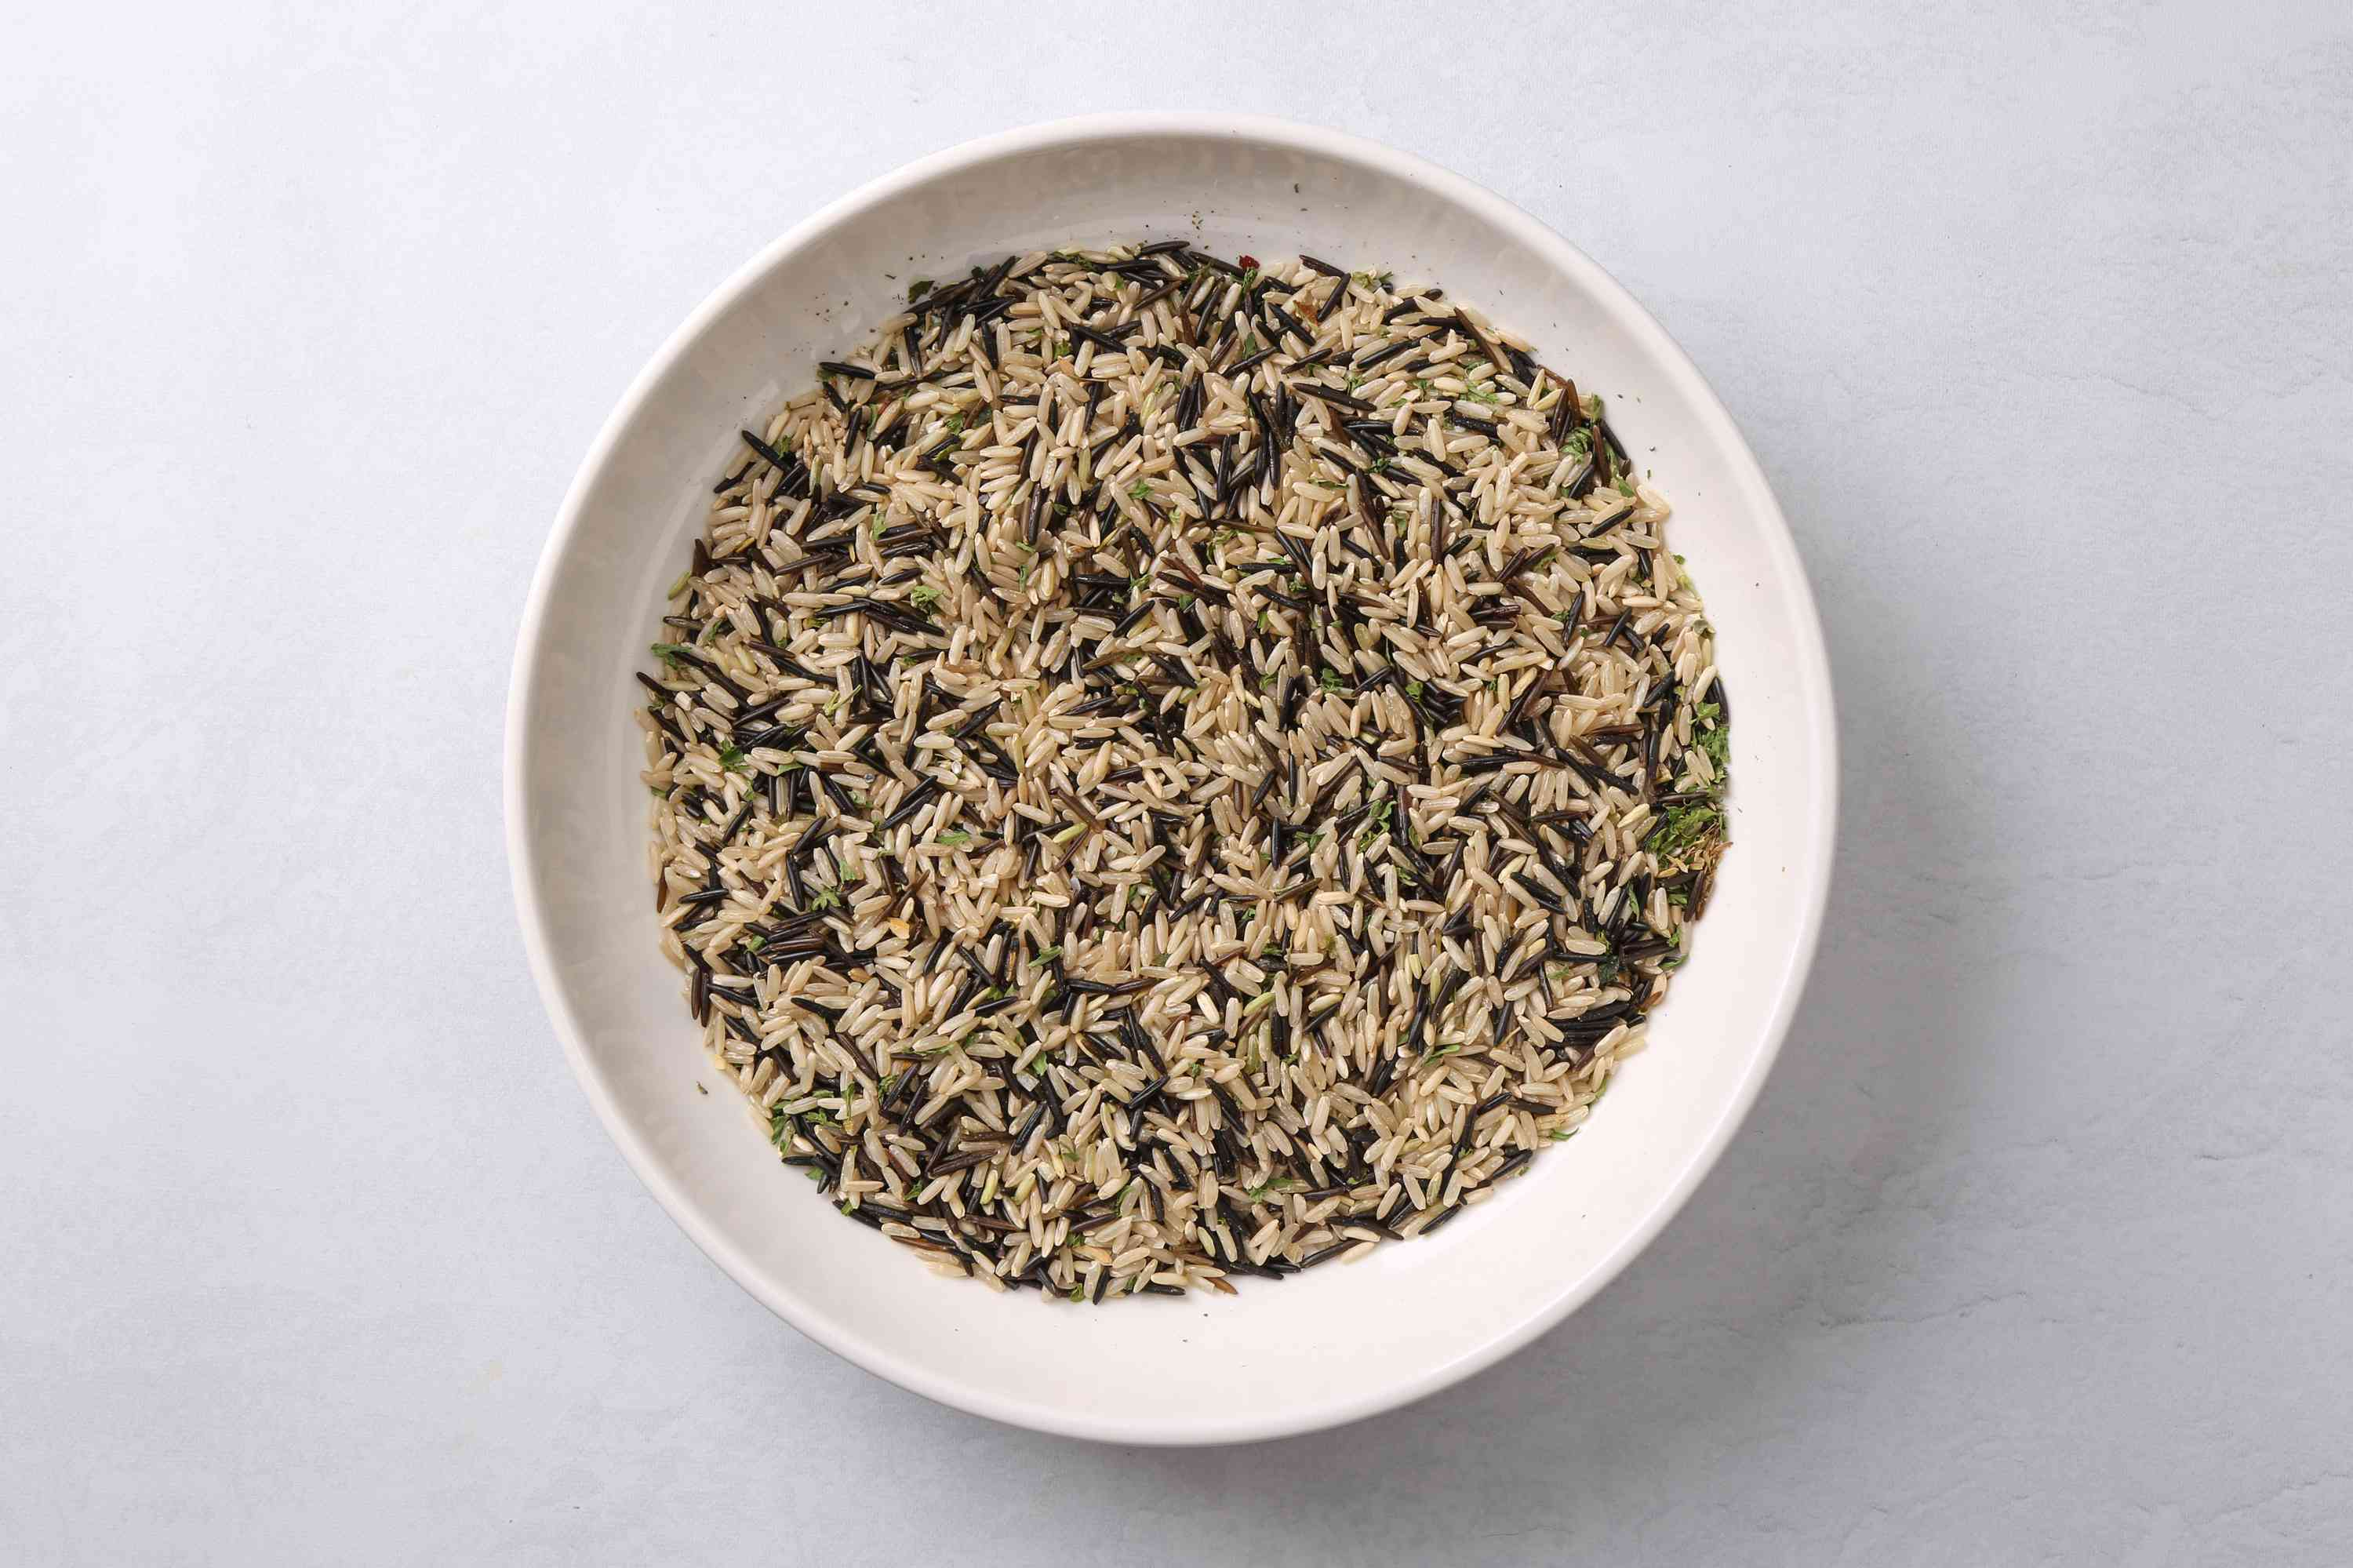 Long Grain Wild Rice Mix ingredients in a bowl